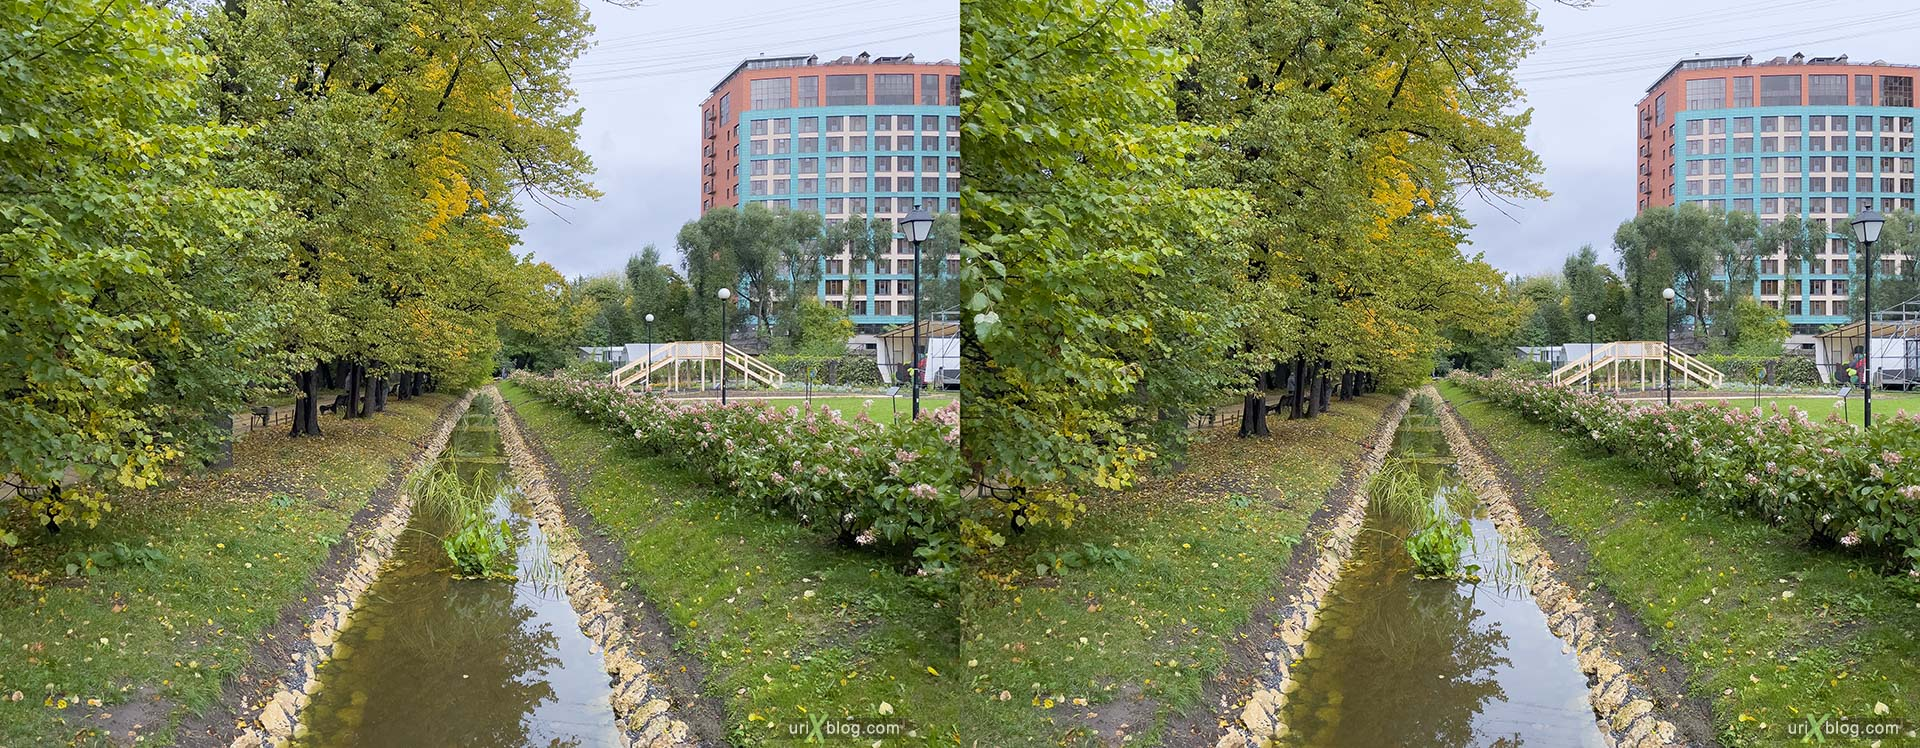 canal, Pharmaceutical Garden, Russia, Moscow, 3D, stereo pair, cross-eyed, crossview, cross view stereo pair, stereoscopic